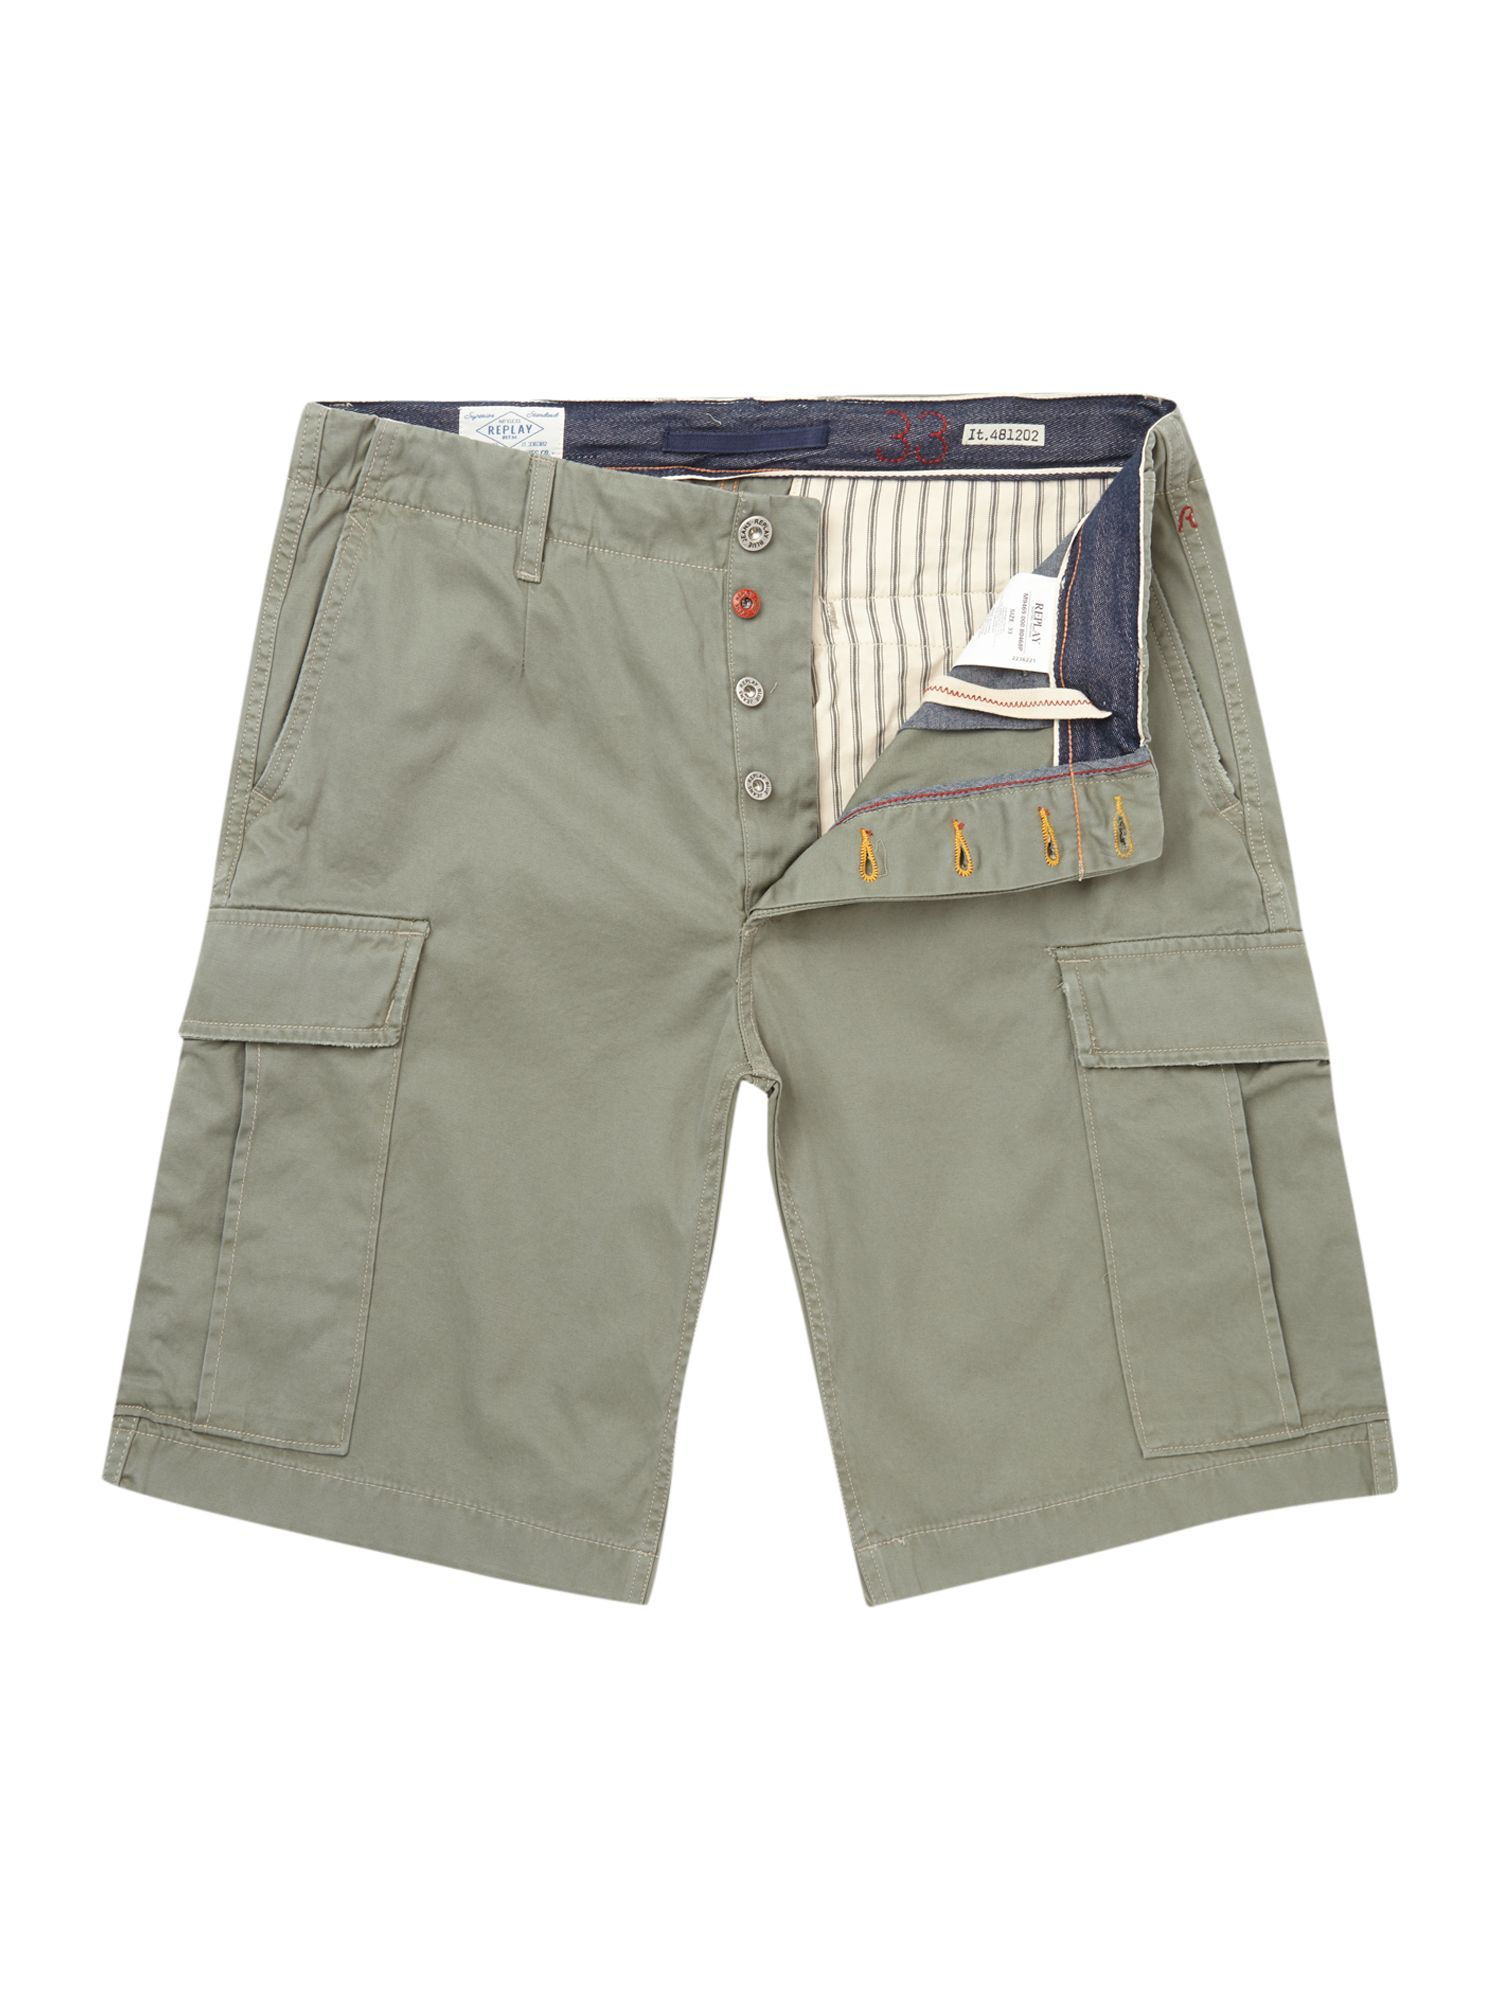 Gabardine 2 pocket regular fit cargo short